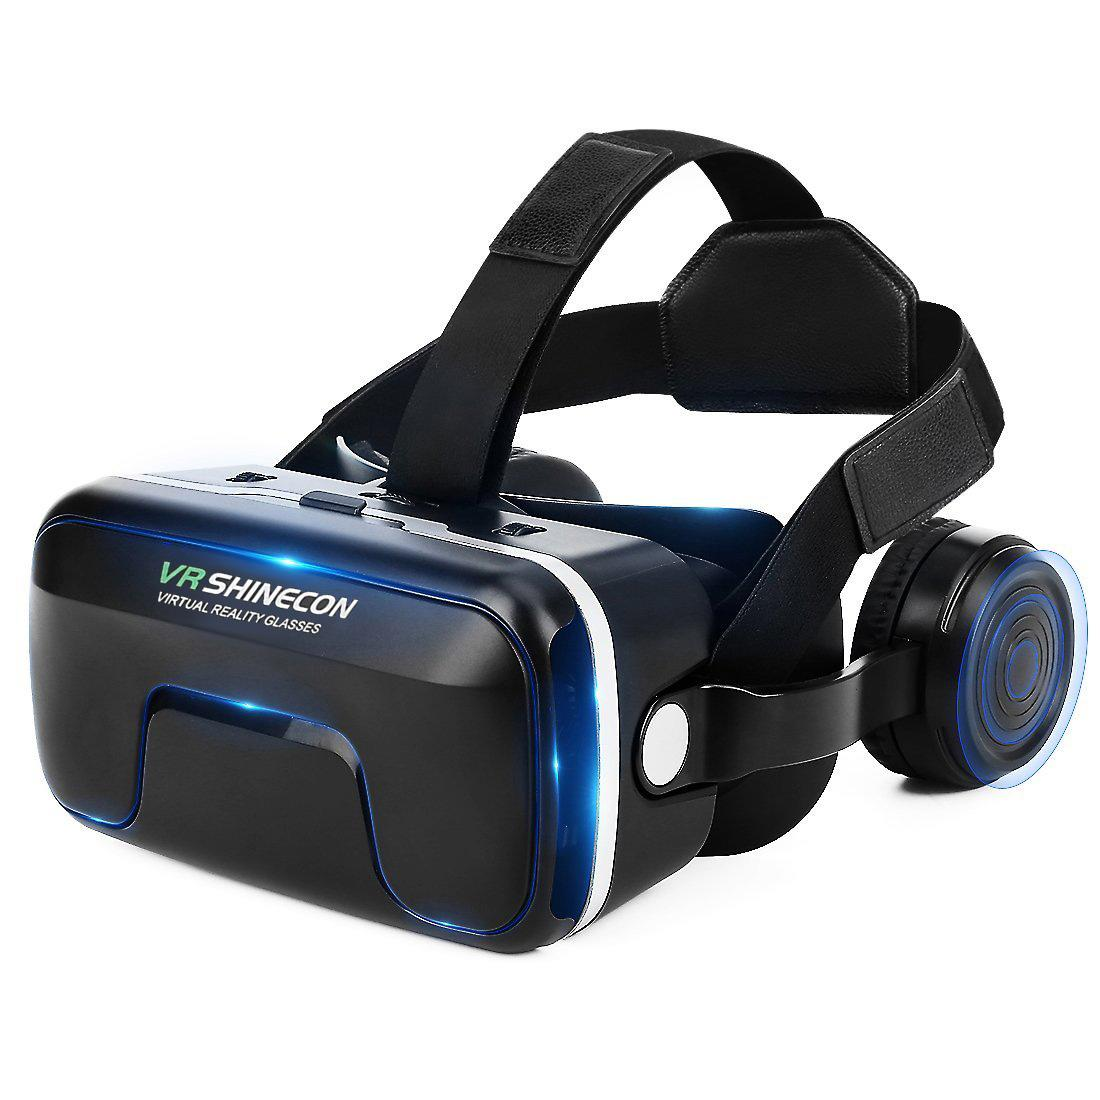 ETVR 3D VR Box Glasses Virtual Reality Headset for 3D Movies & VR Games with Stereo